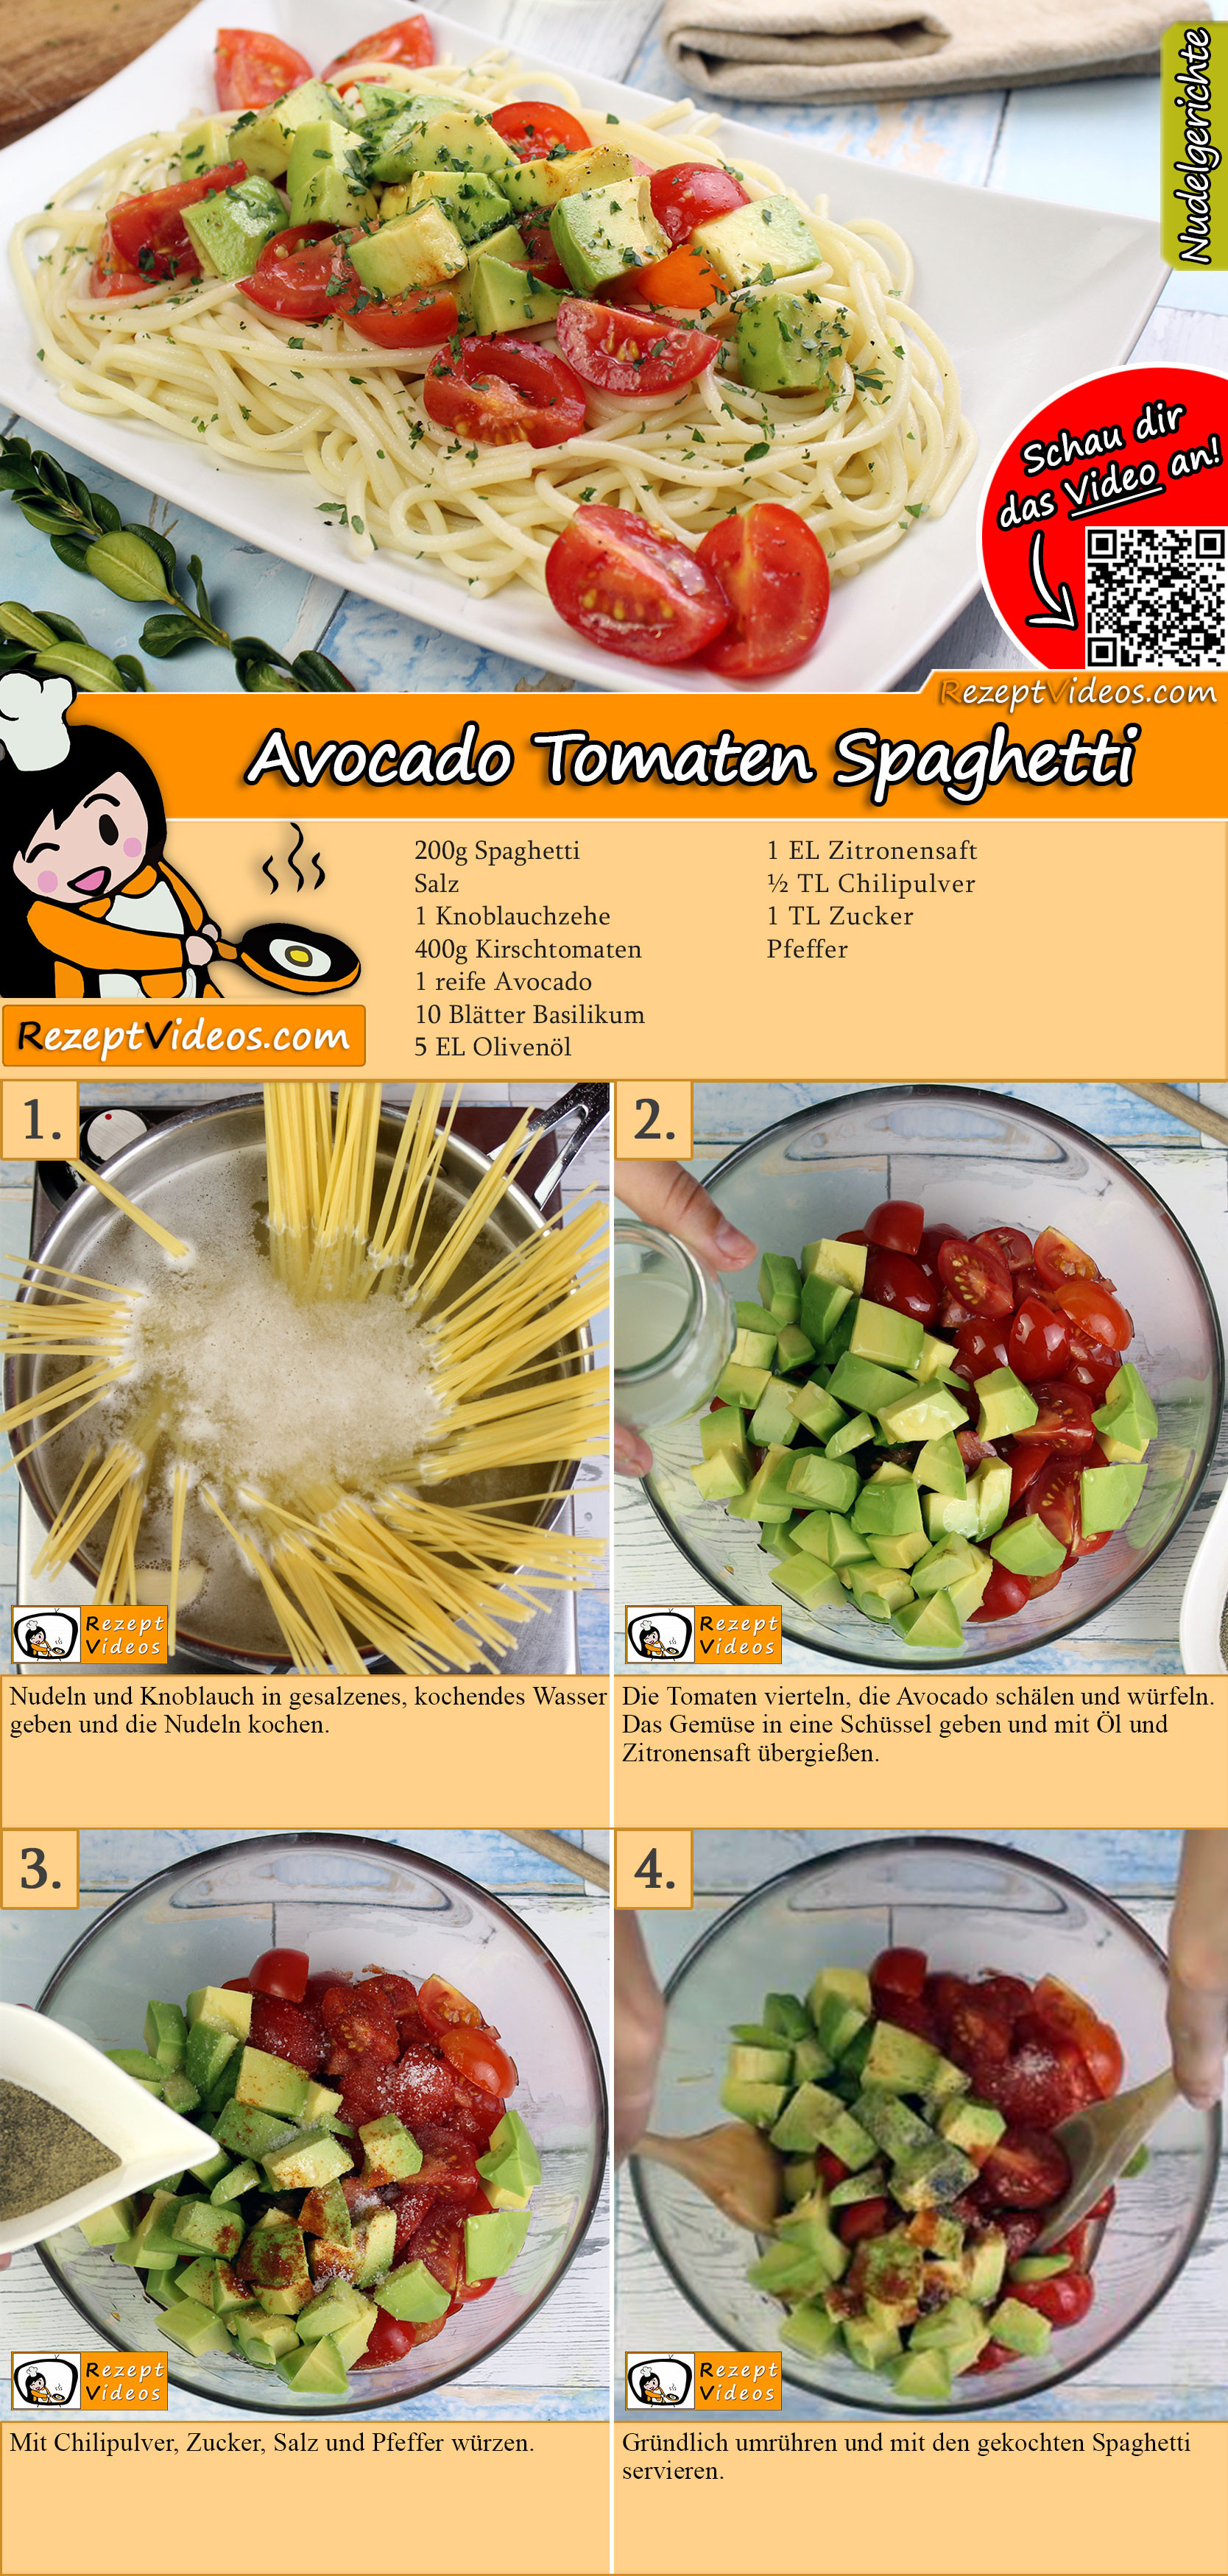 Avocado Tomaten Spaghetti Rezept mit Video